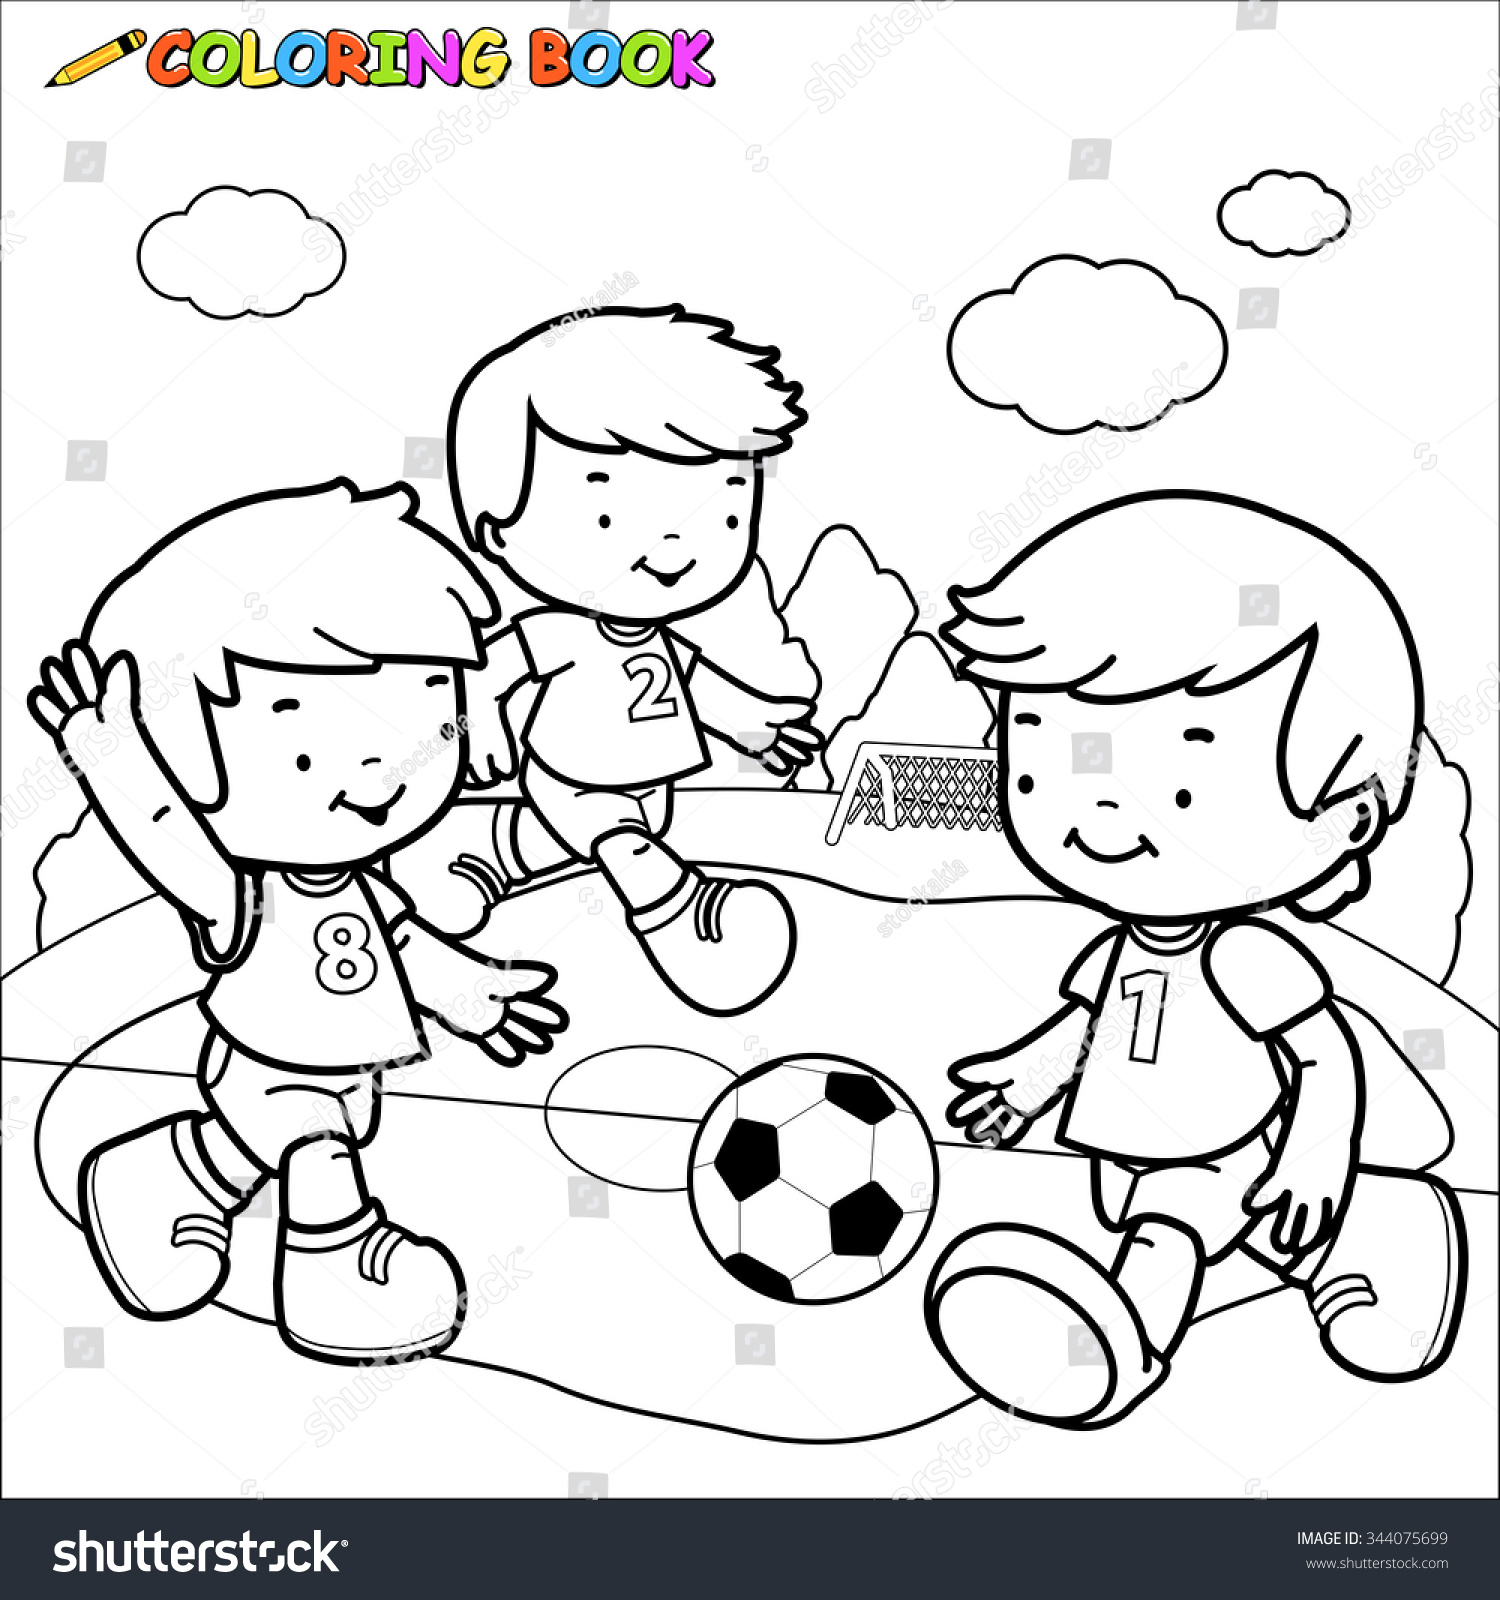 Children Playing Soccer Coloring Book Page Stockillustration ...